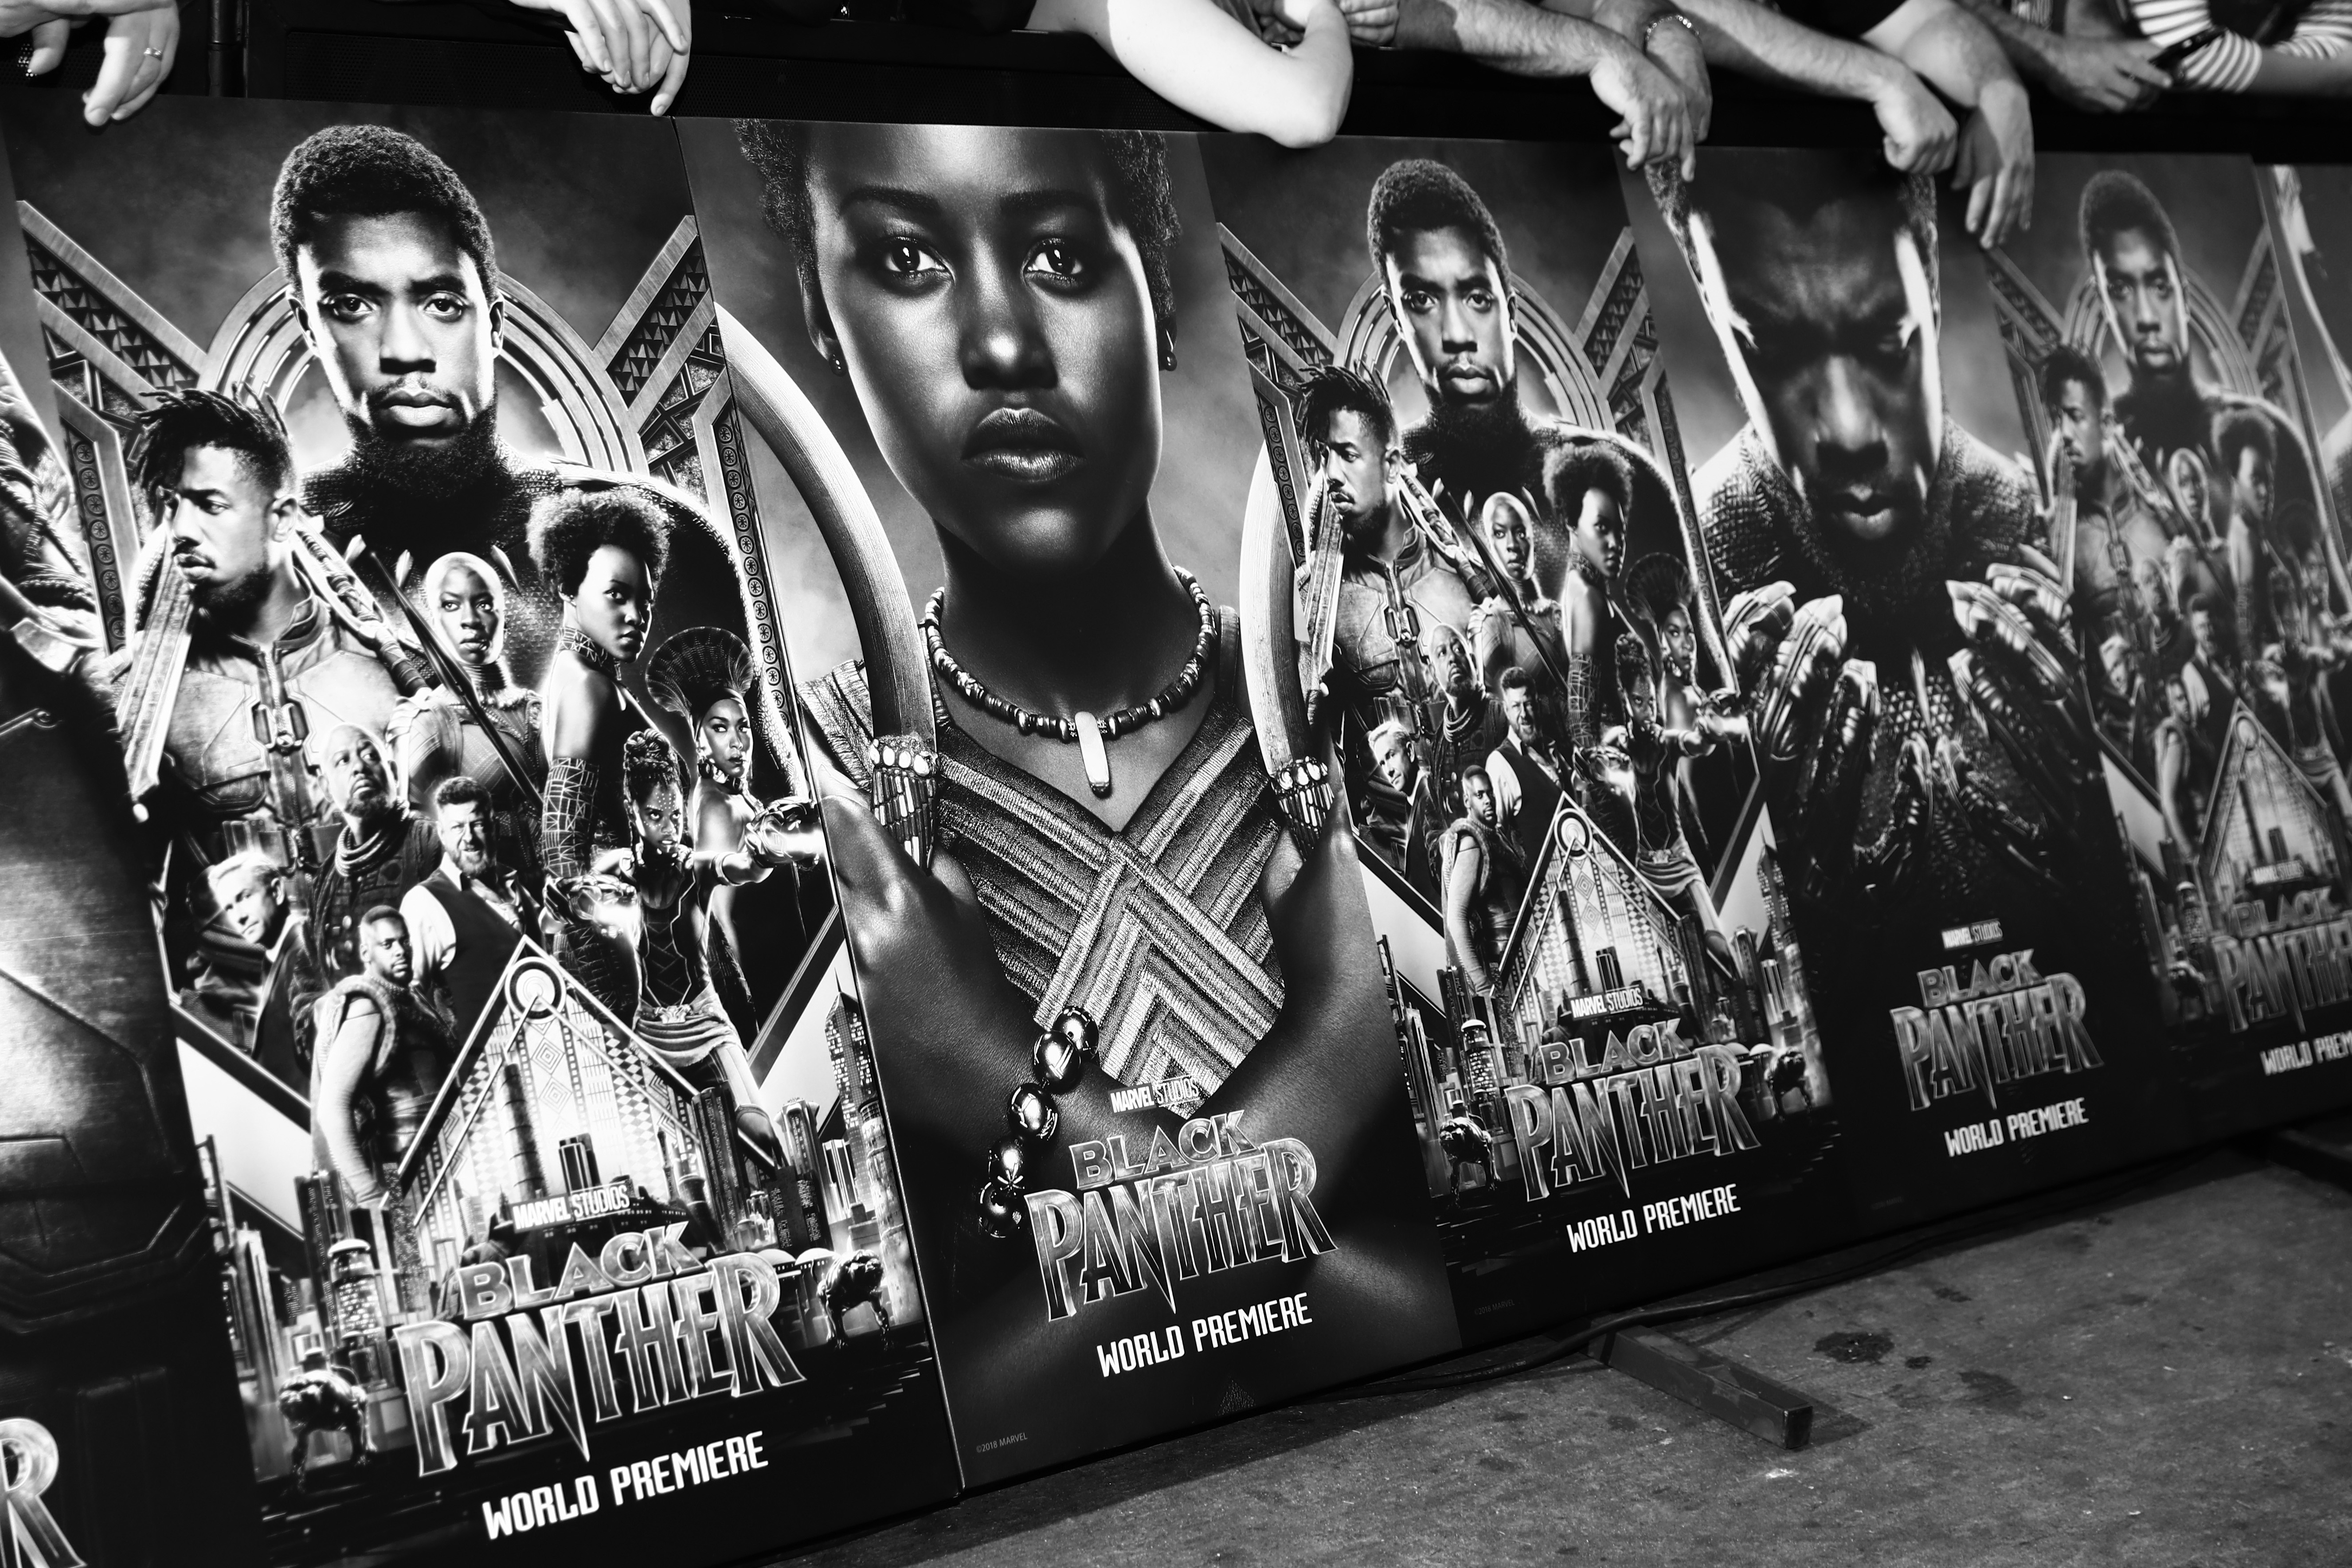 Black Panther Movie Poster in Black and White